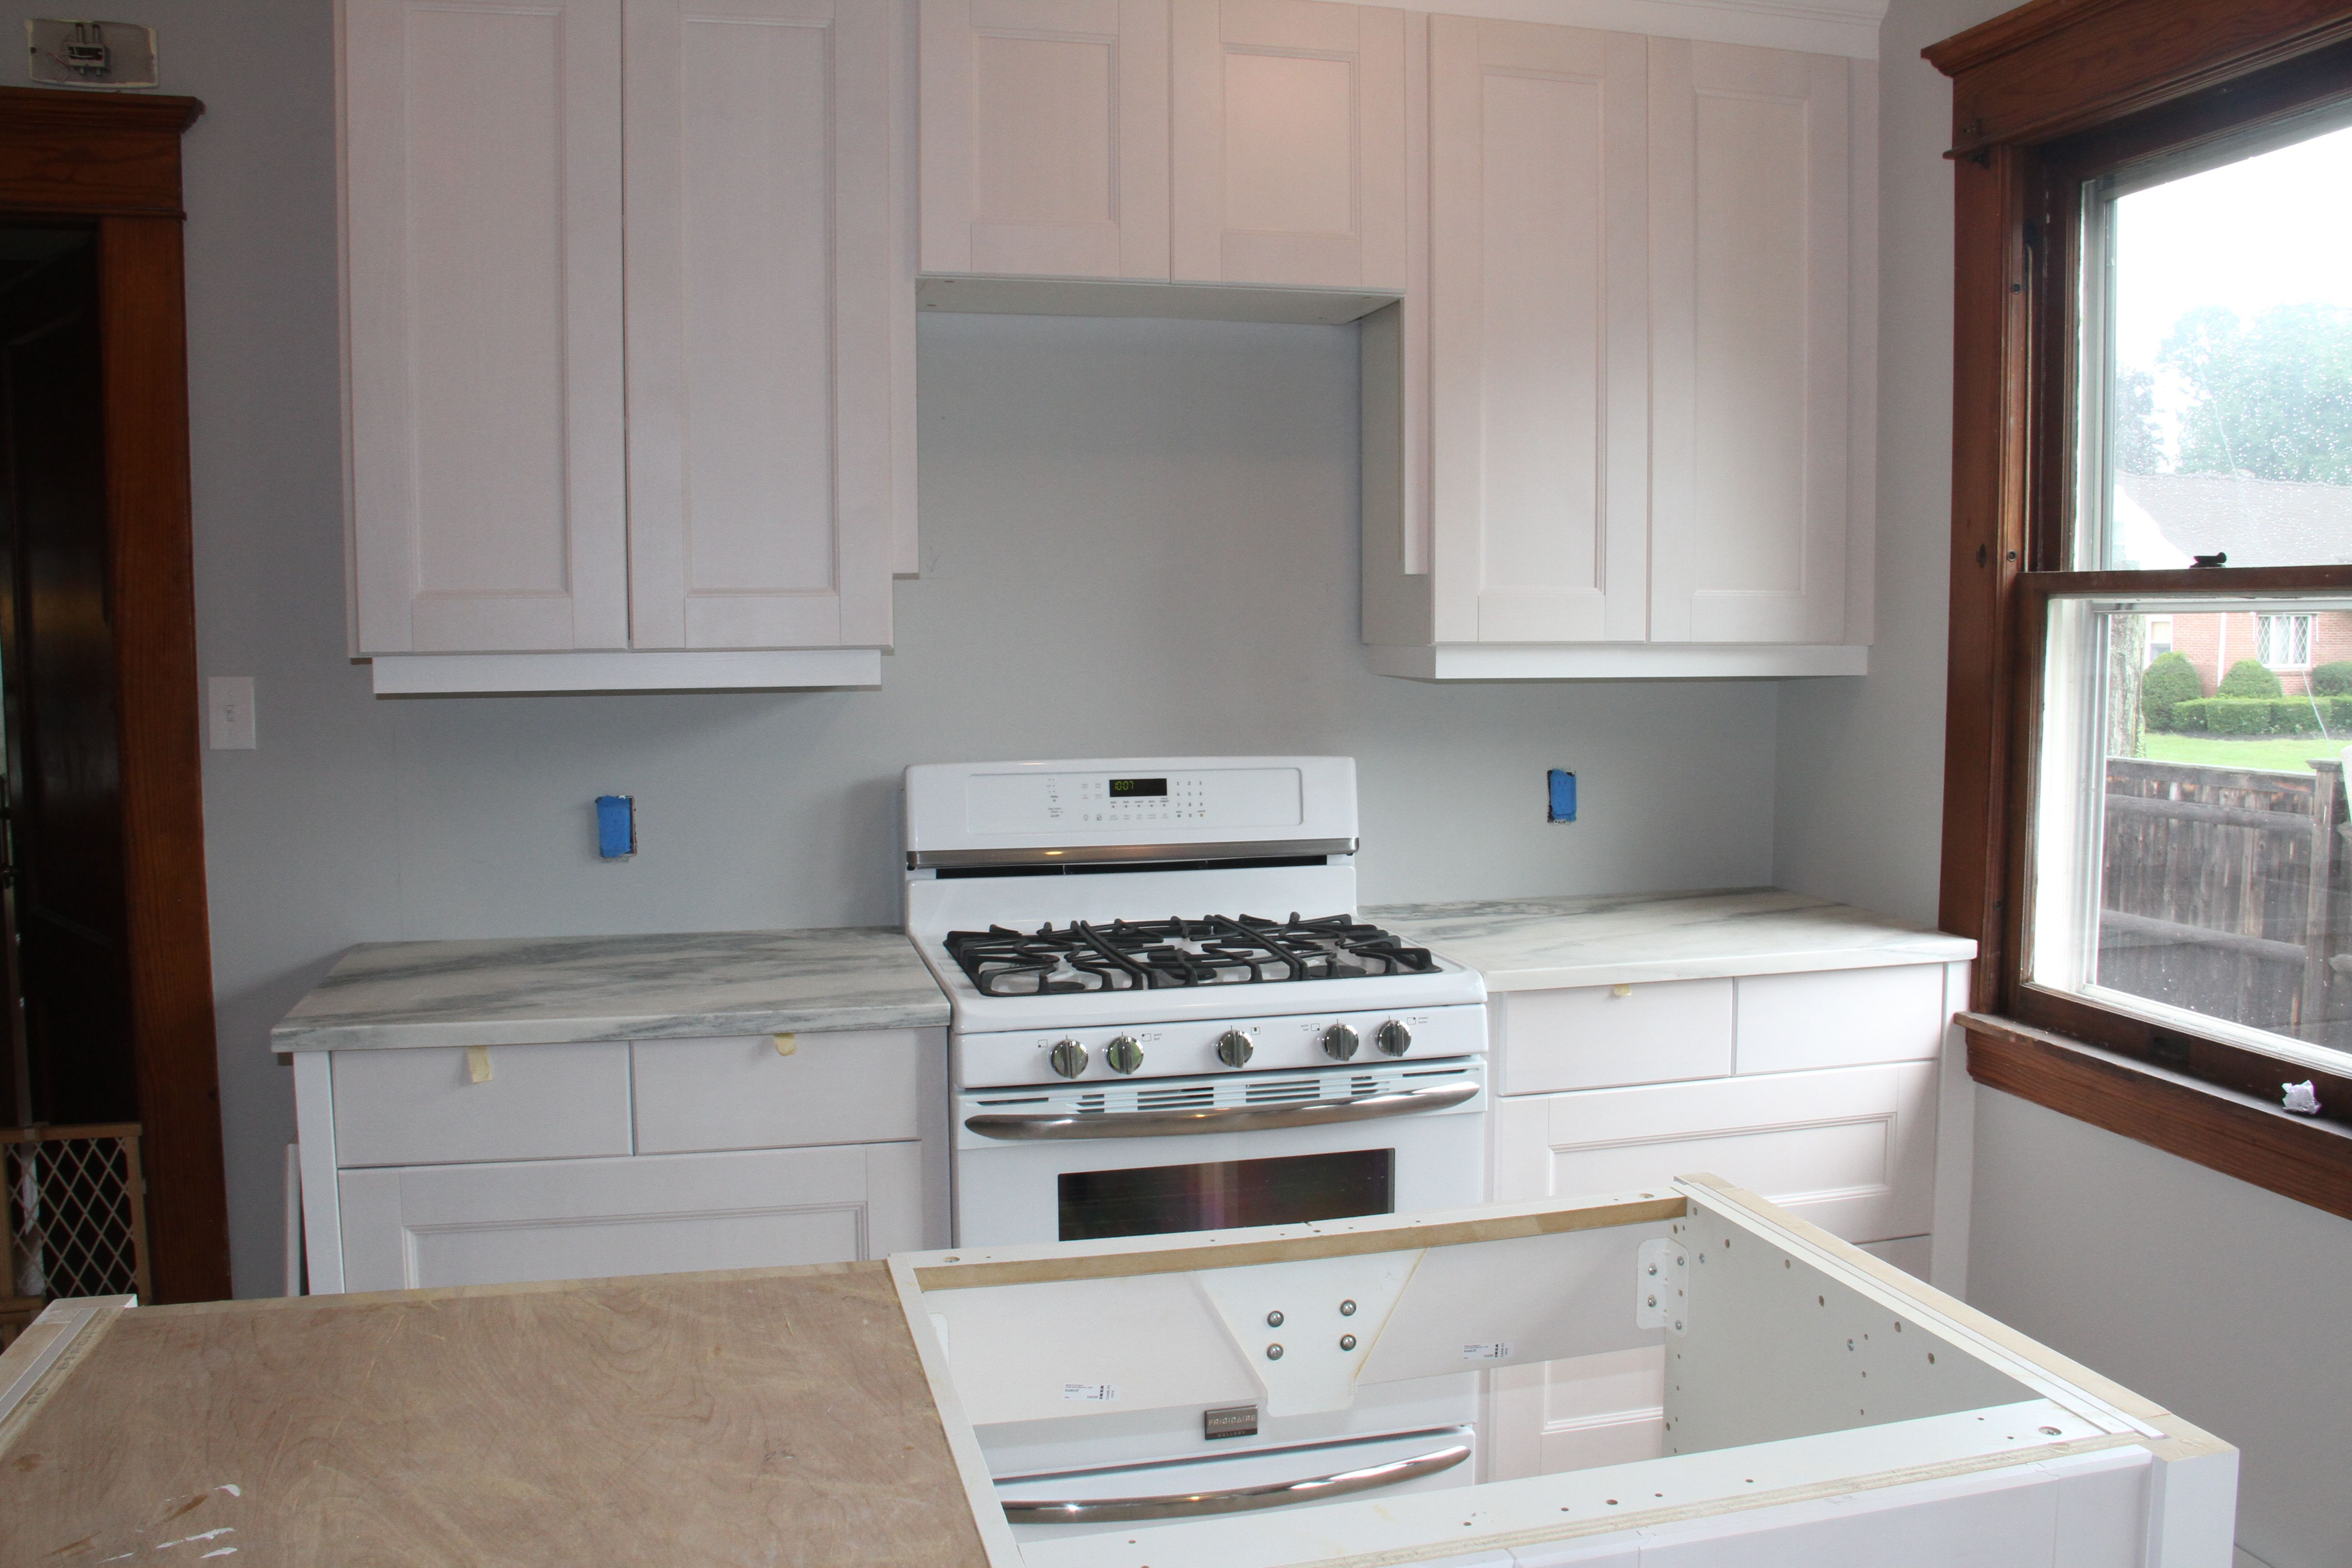 BAM! Check me out! And this is BEFORE the backsplash goes in...